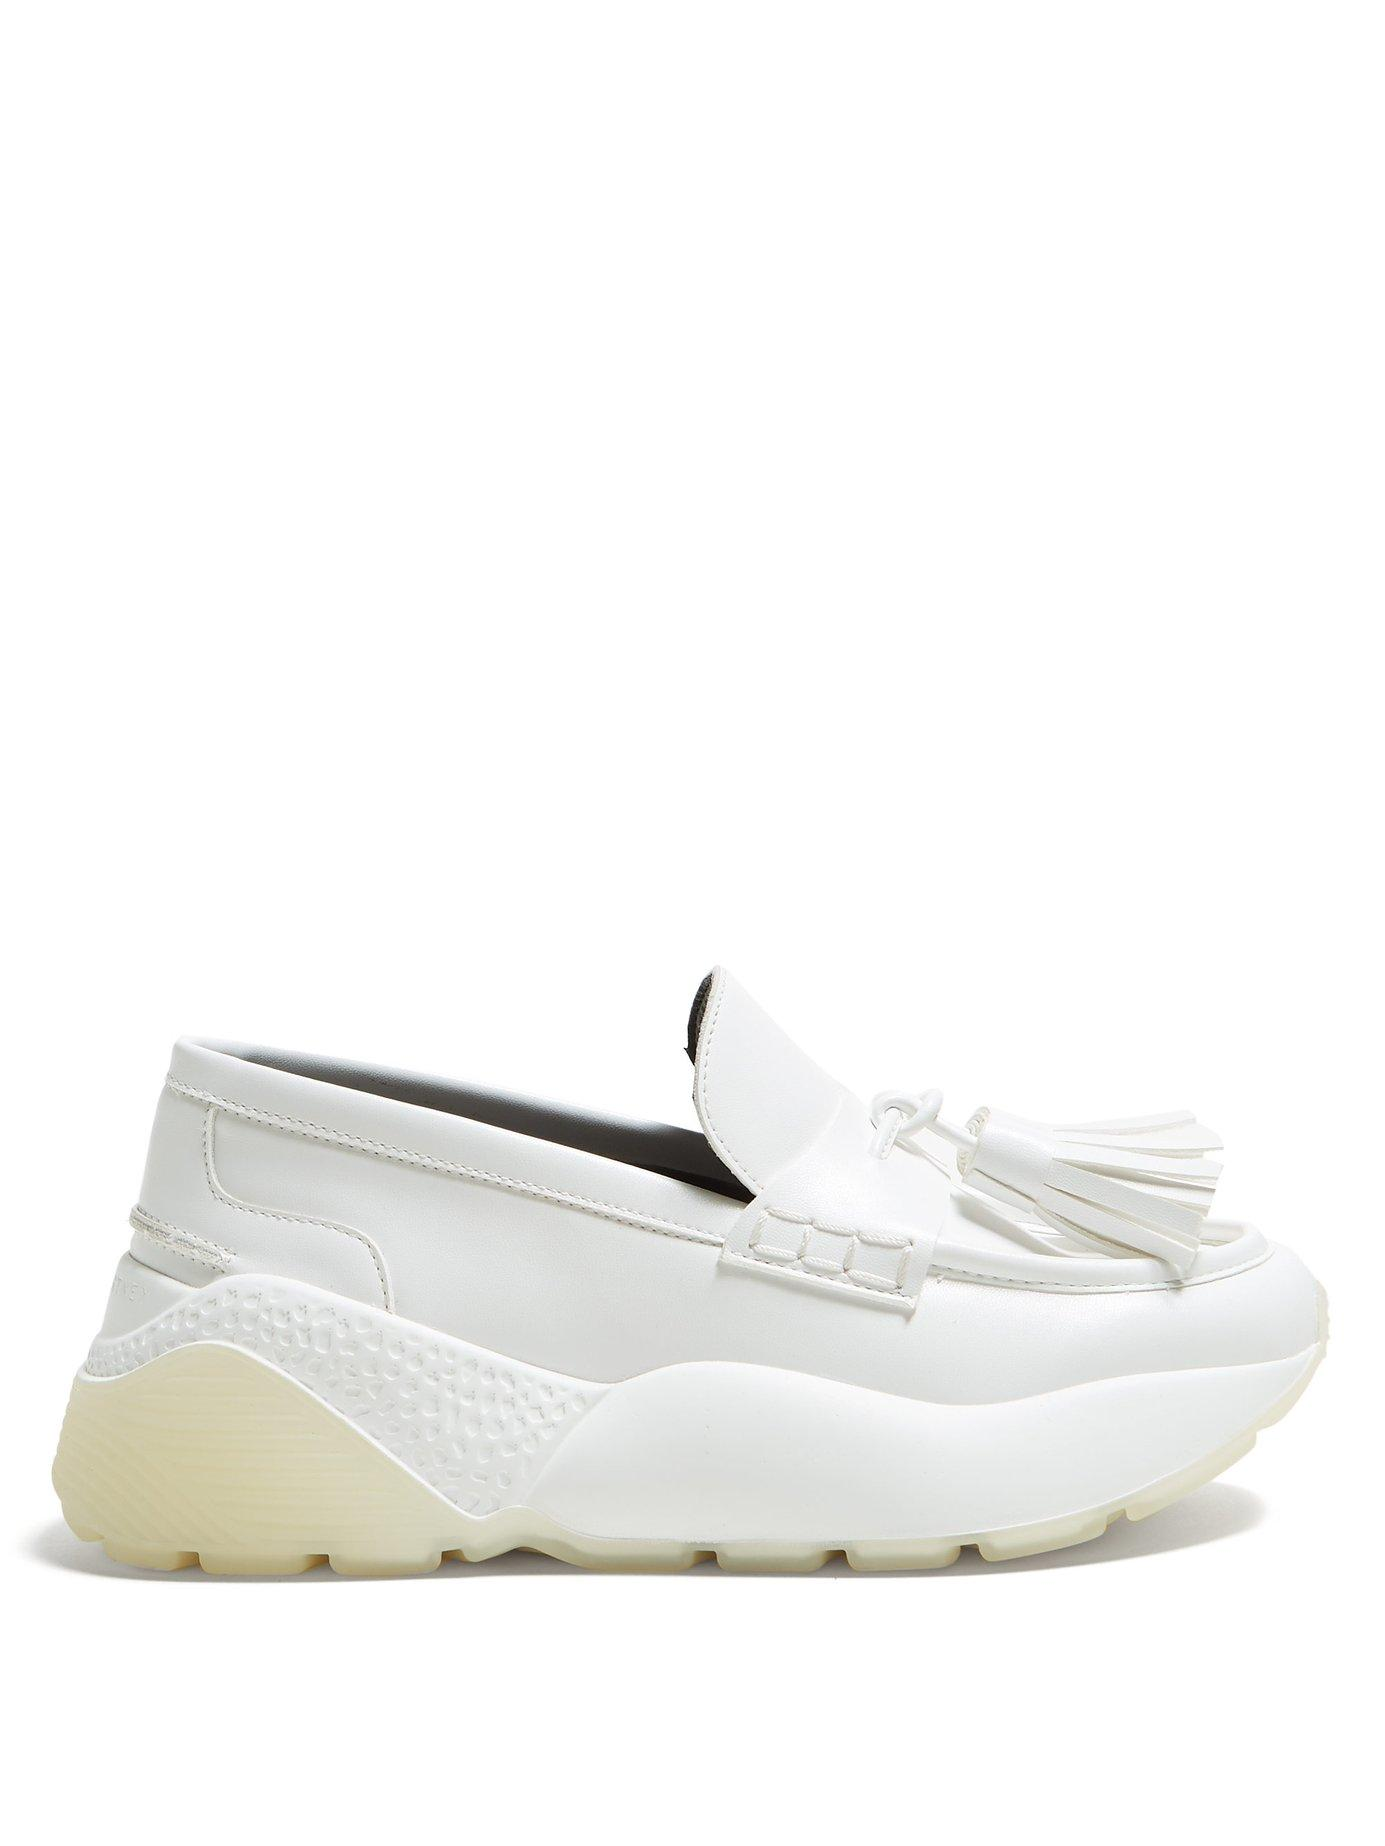 959e4ba0c42 Lyst - Stella McCartney Faux Leather Flatform Loafers in White